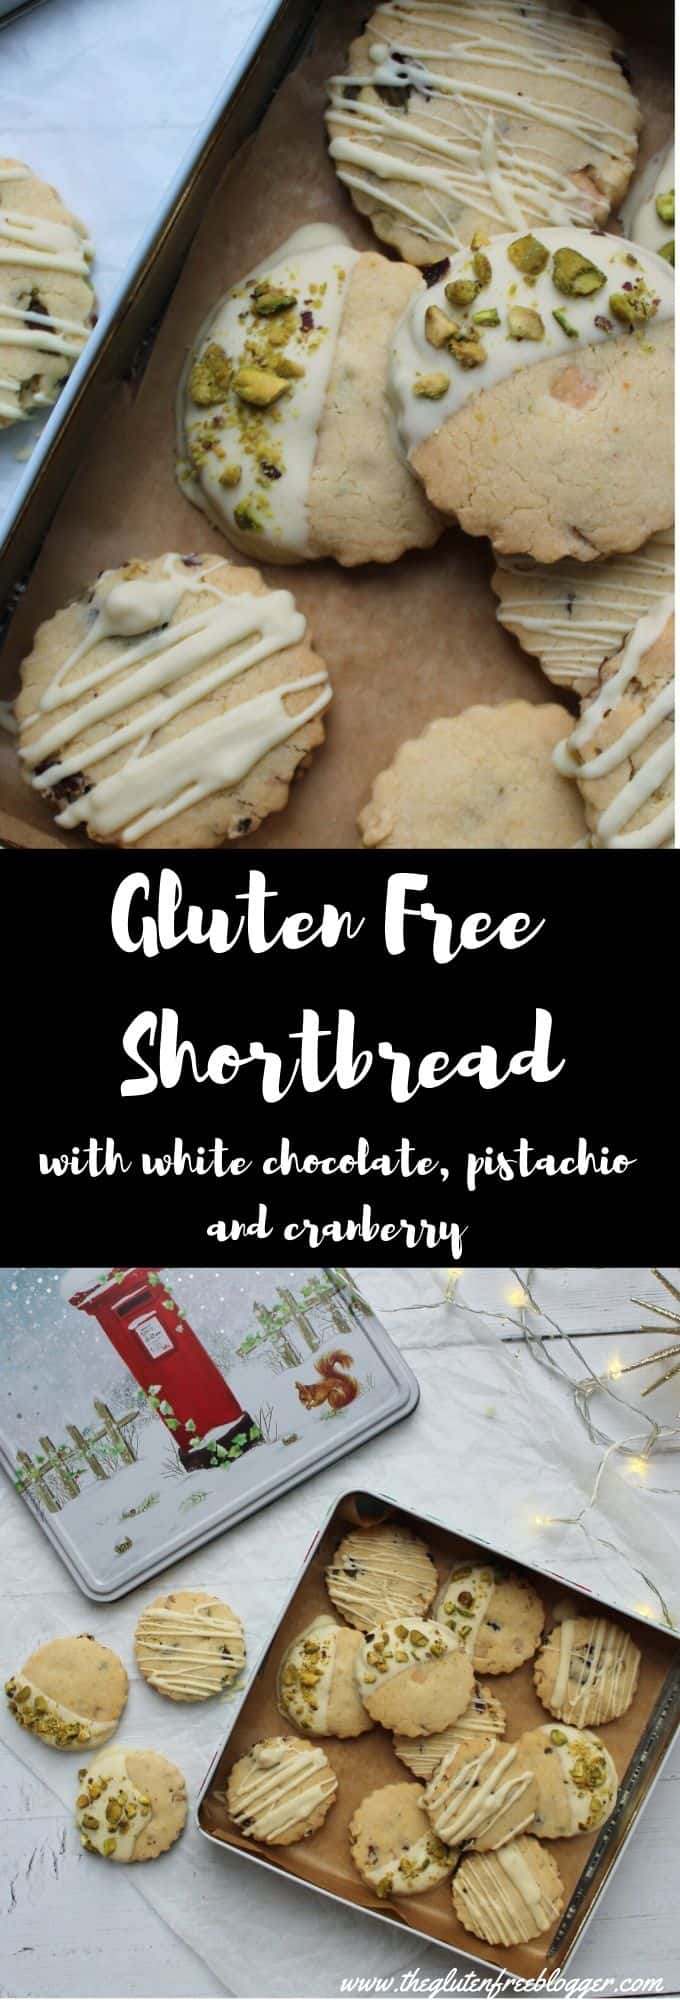 gluten free shortbread recipe with cranberry white chocolate and pistachio christmas gift idea